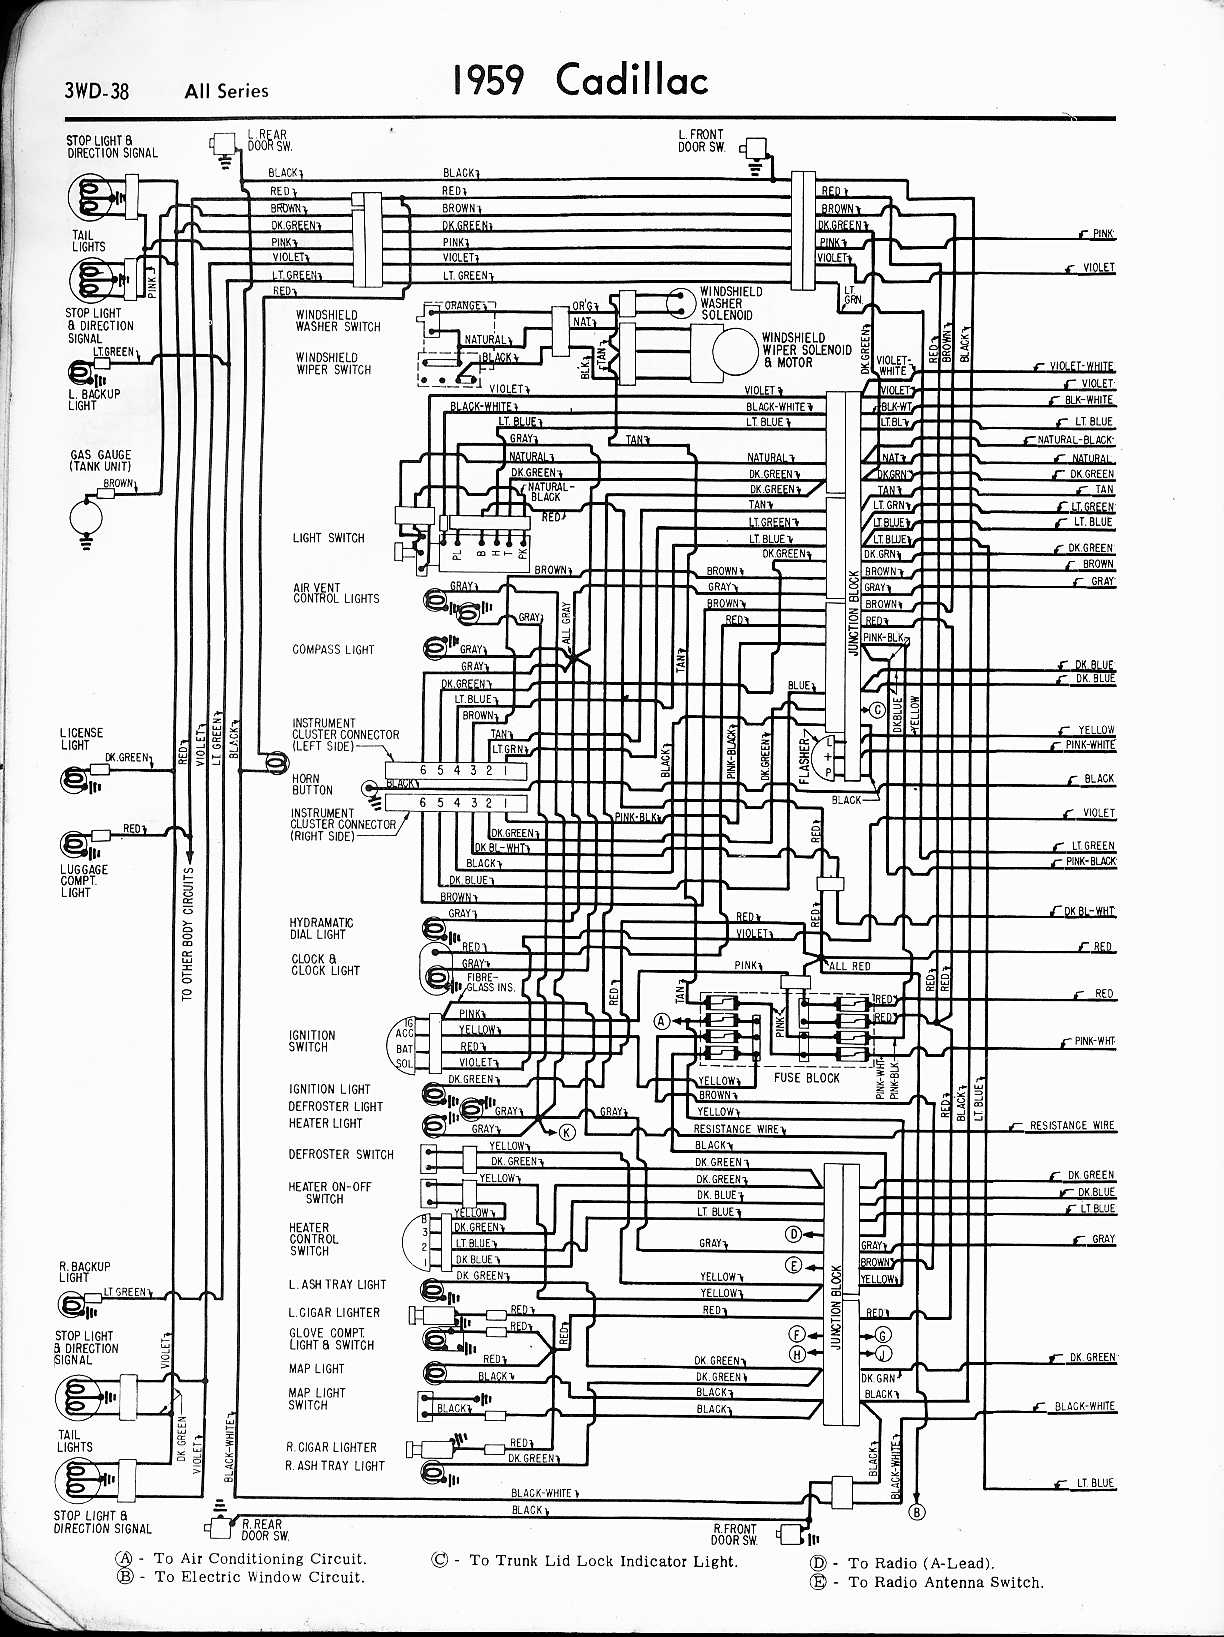 Cadillac Concours Engine Diagram Wiring Diagrams Image